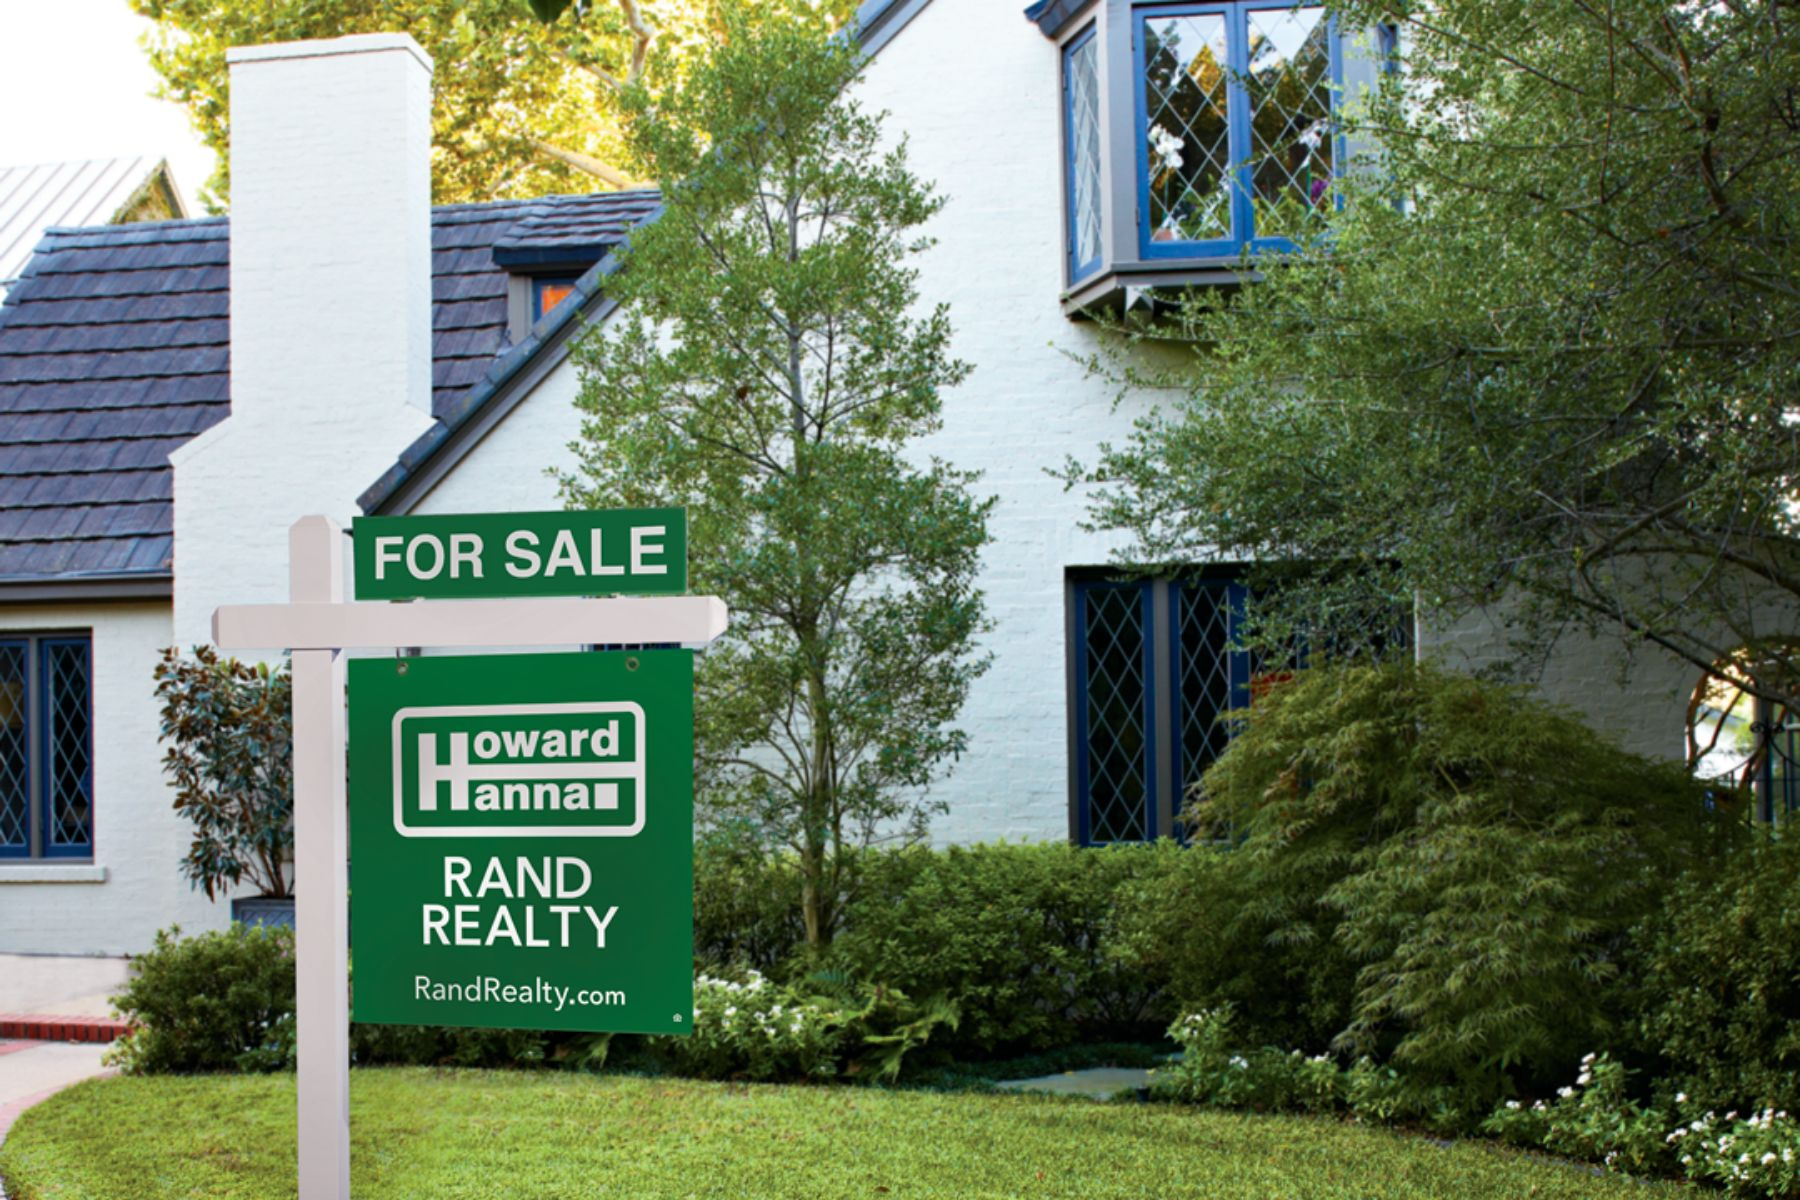 Howard Hanna   Rand Realty - A Family Real Estate Company Proudly Serving  New York and New Jersey.